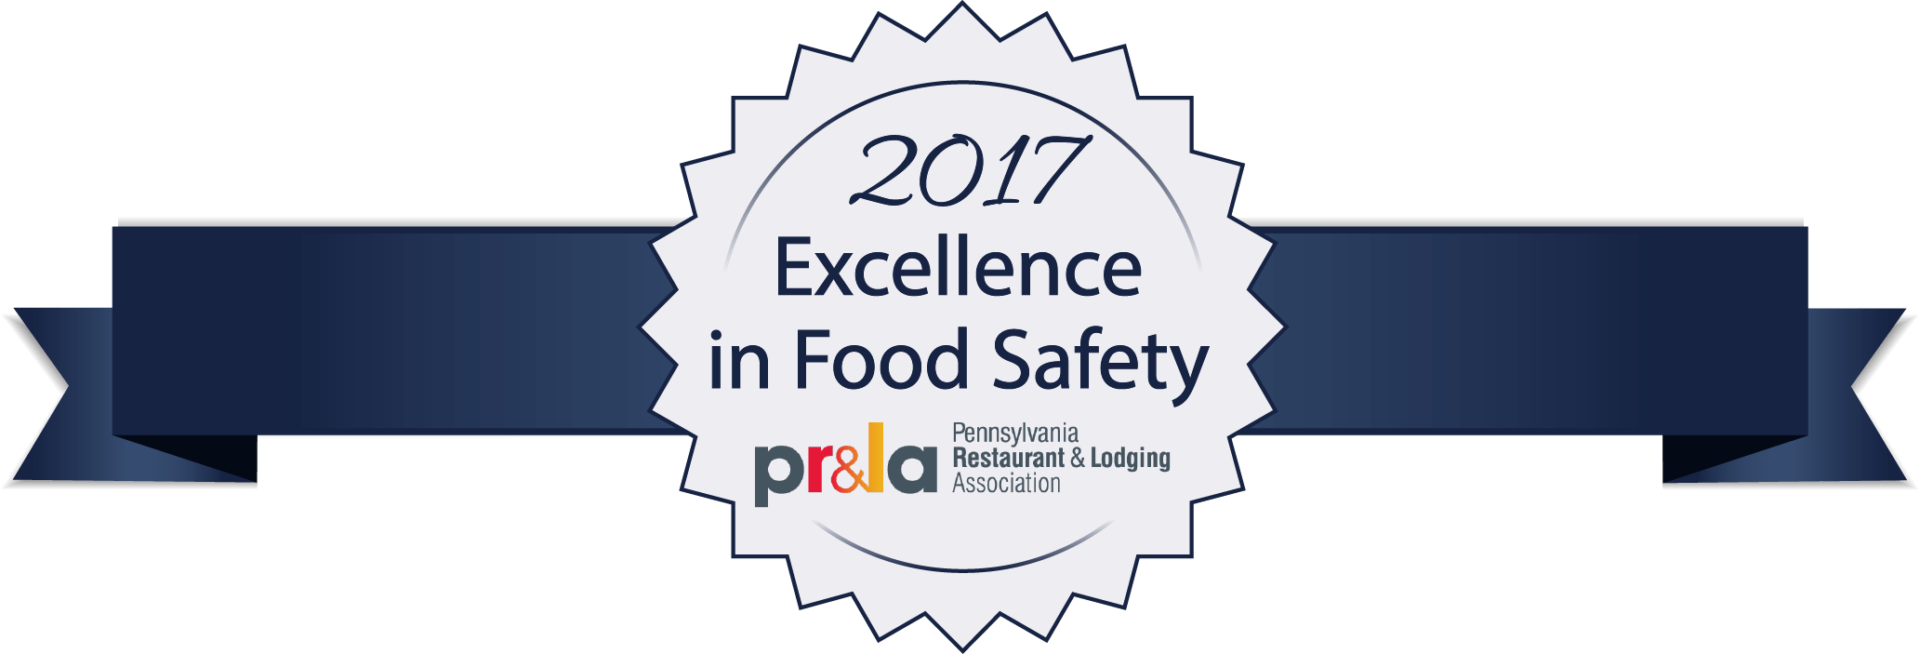 2017 excellence in food safety badge